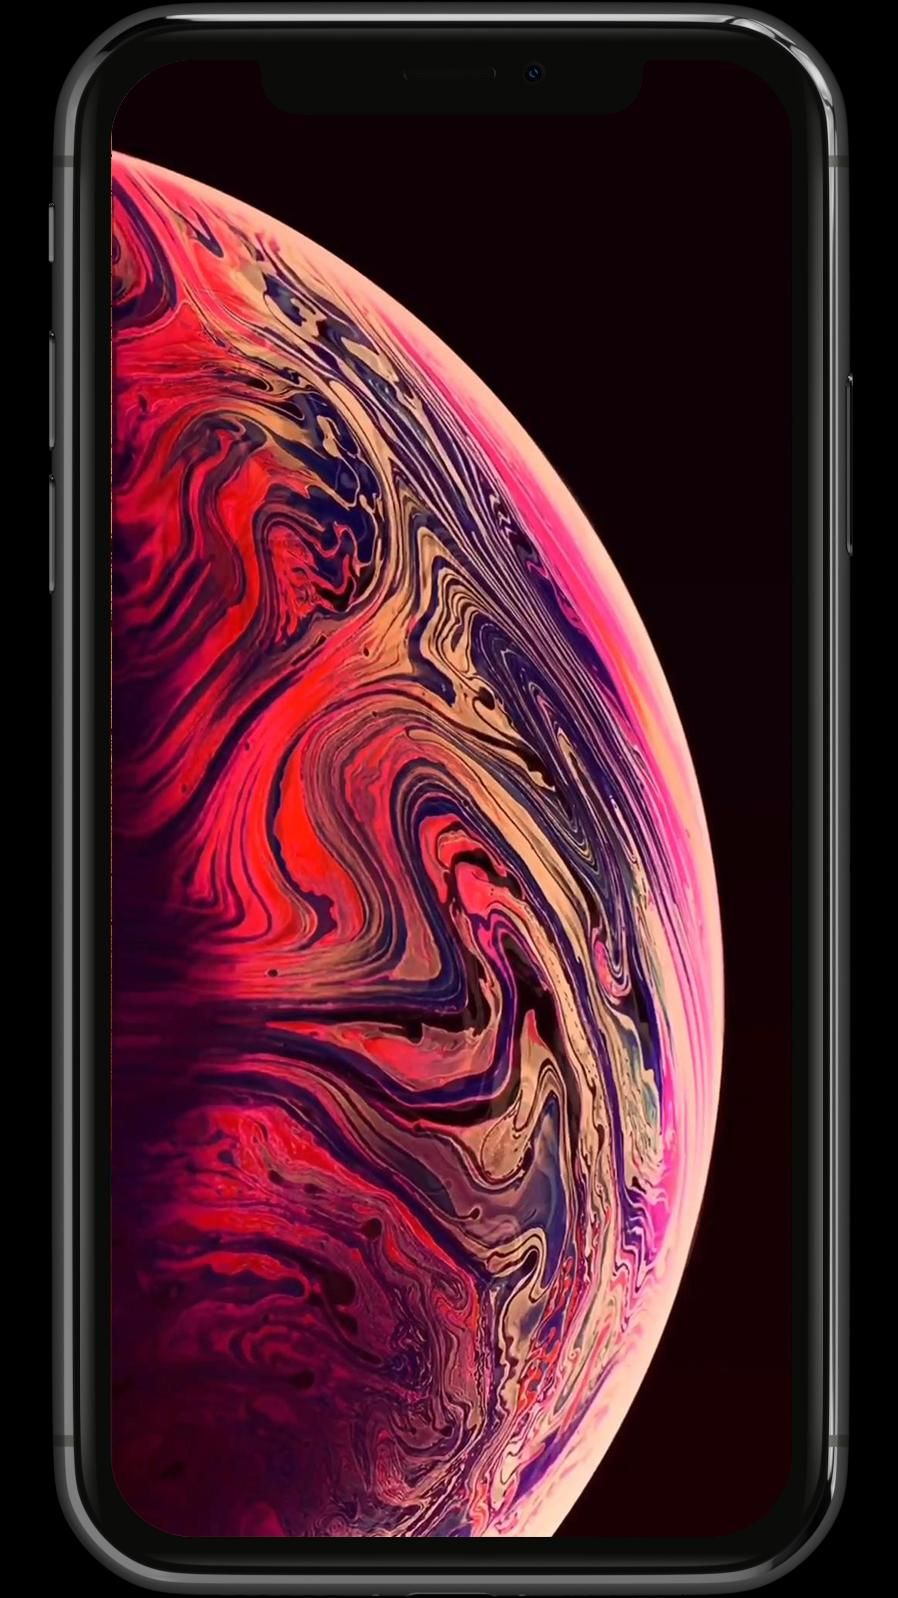 Iphone Xs Max Live Wallpaper Download For Android Iphone Wallpaper Video Original Iphone Wallpaper Live Wallpaper Iphone